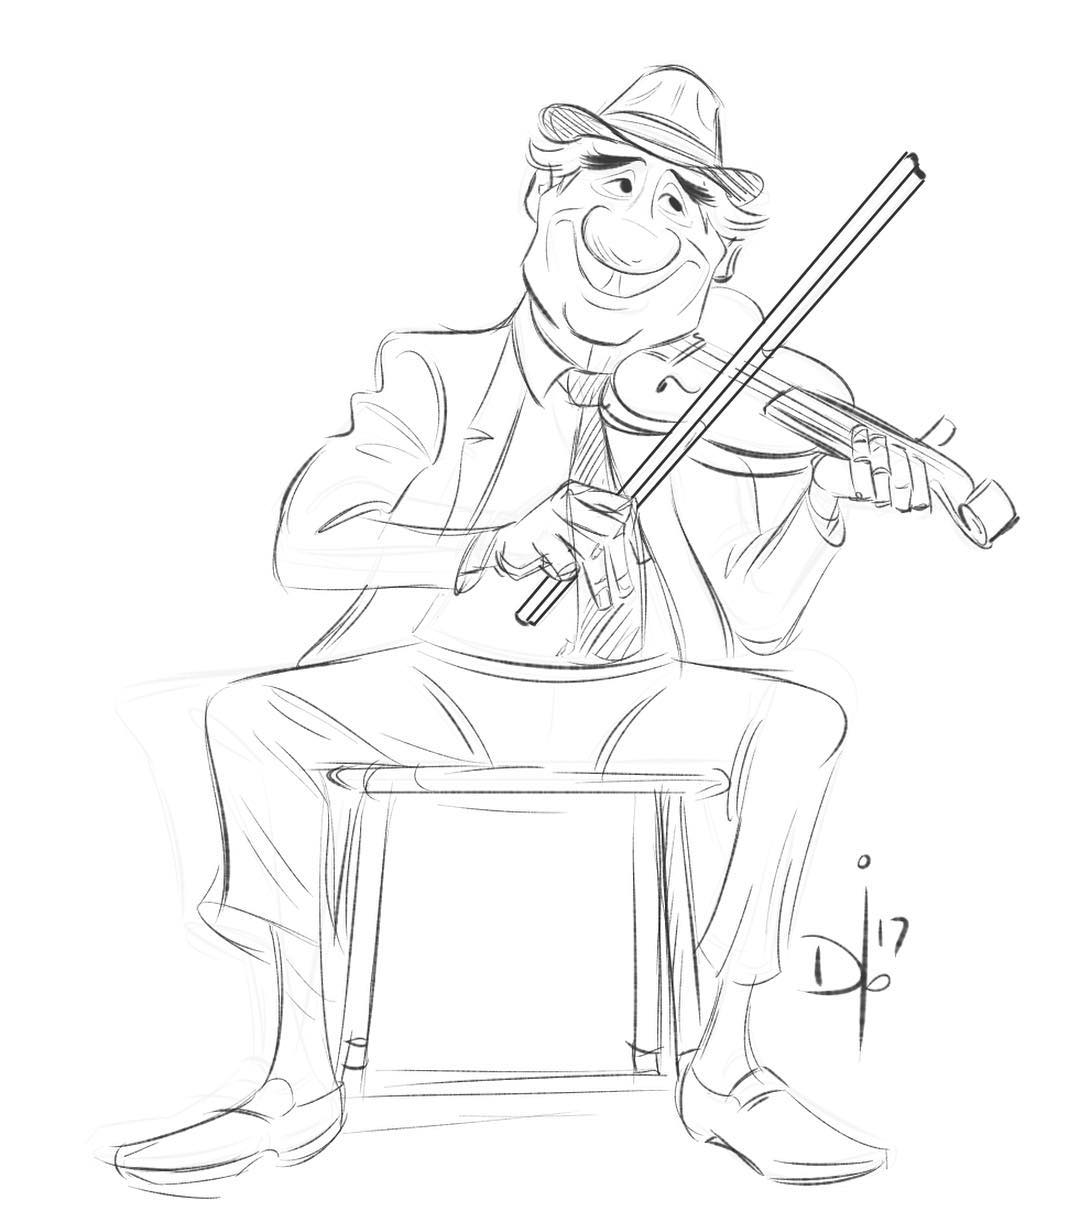 Violin Cartoon Drawing